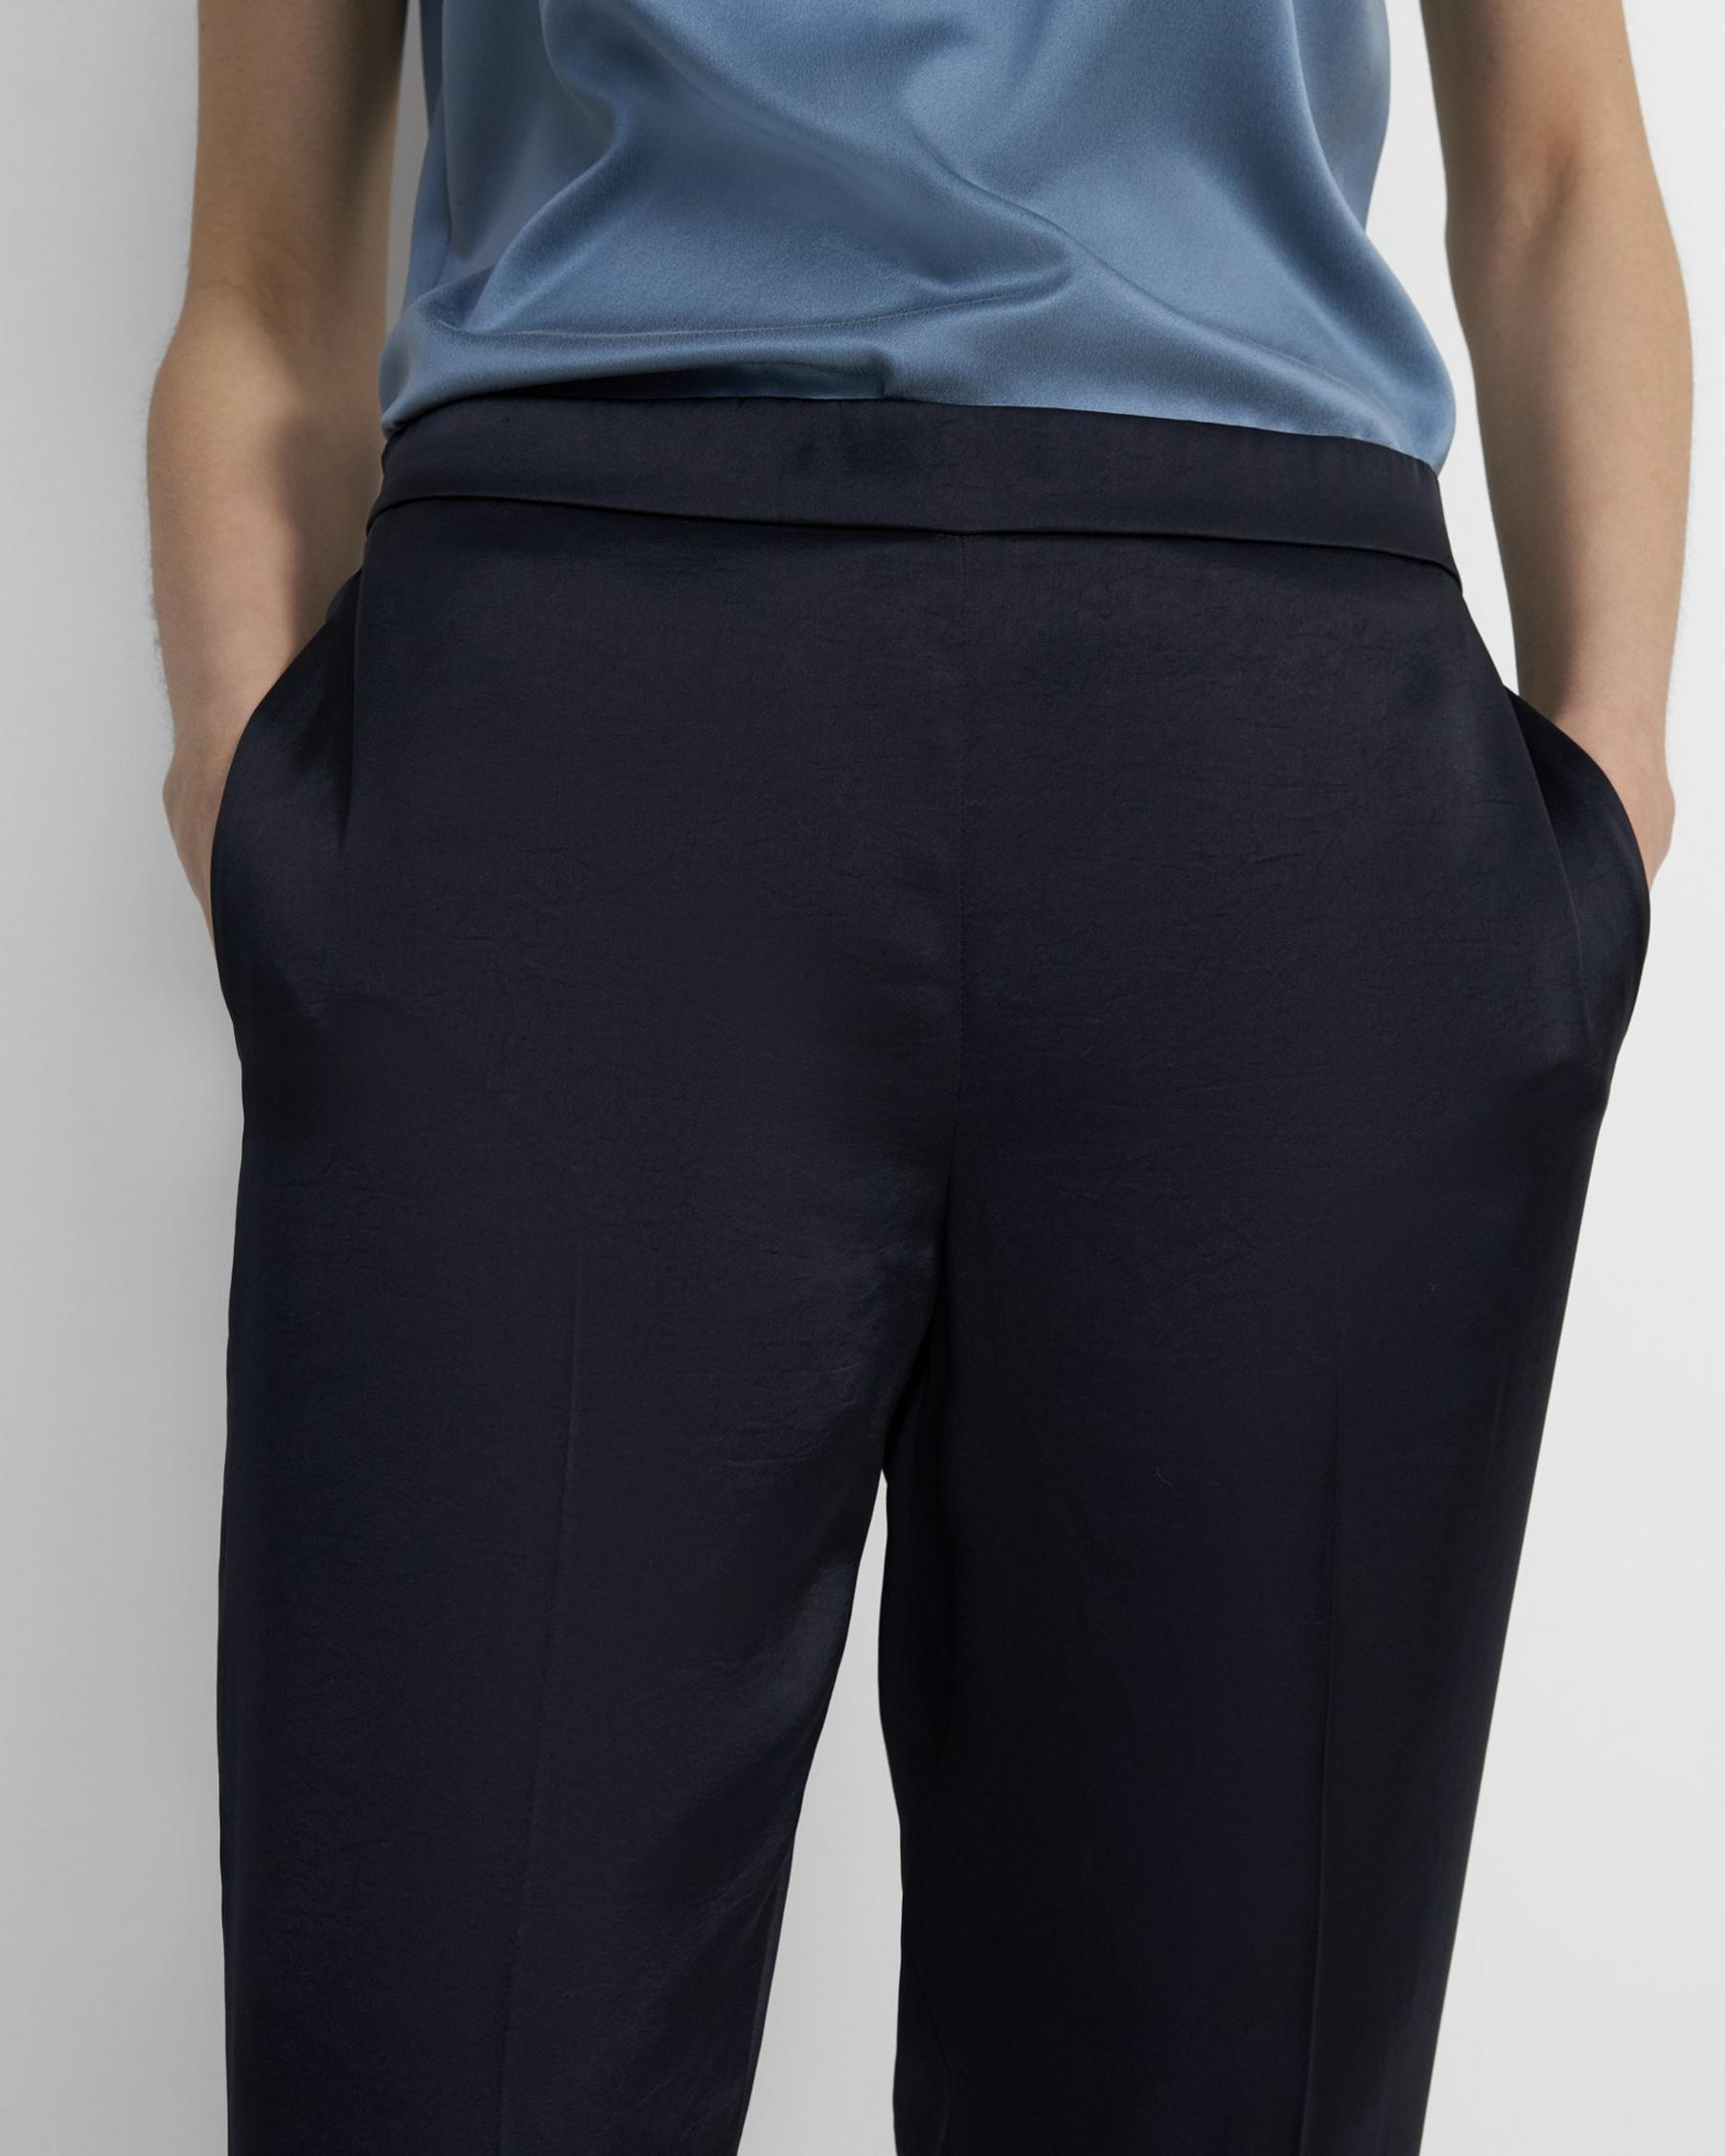 Straight-Leg Pull On Pant Pant in Crushed Satin 1